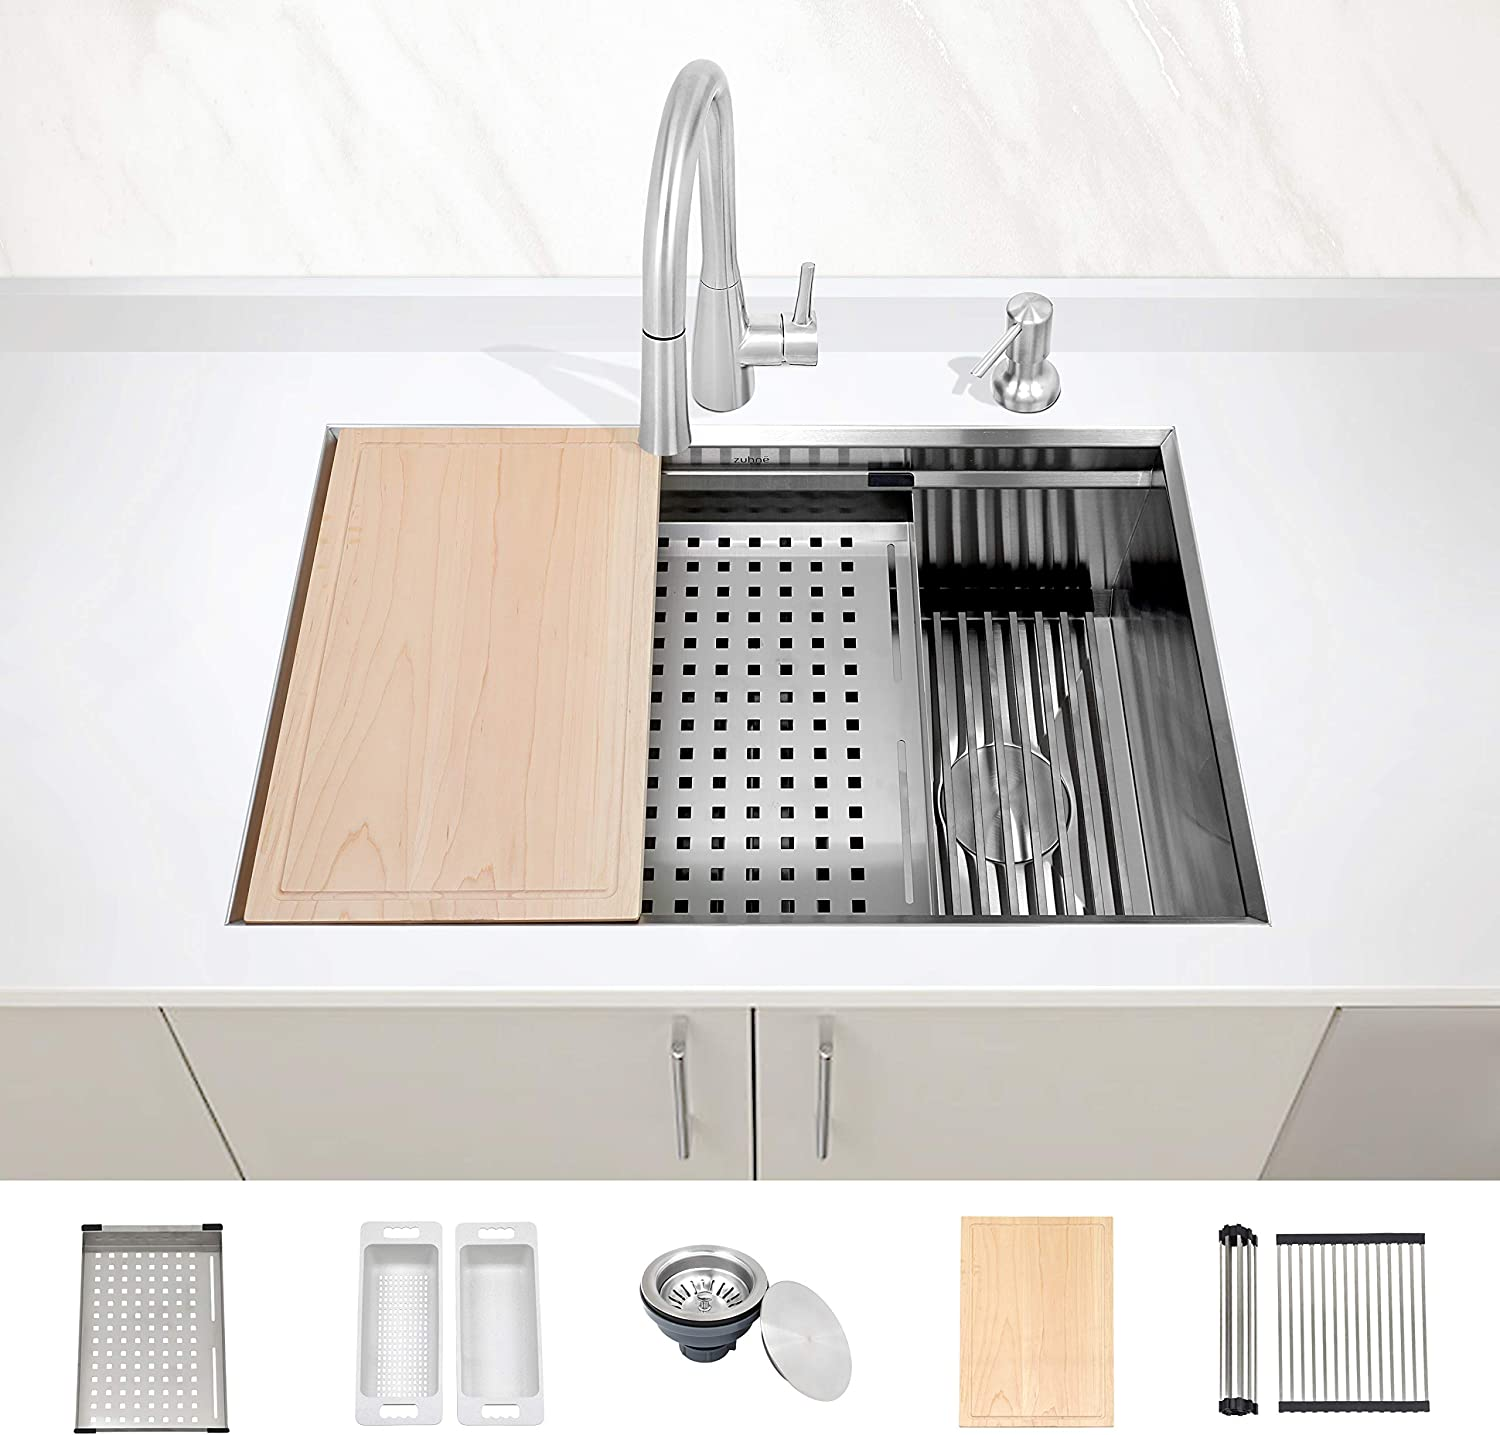 """ZUHNE Level 30-Inch Undermount Workstation Kitchen Sink, Ledge Accessories Stainless Steel 16 Gauge (Single Bowl Left Right Reversible Offset Drain for 33"""" Cabinet)"""